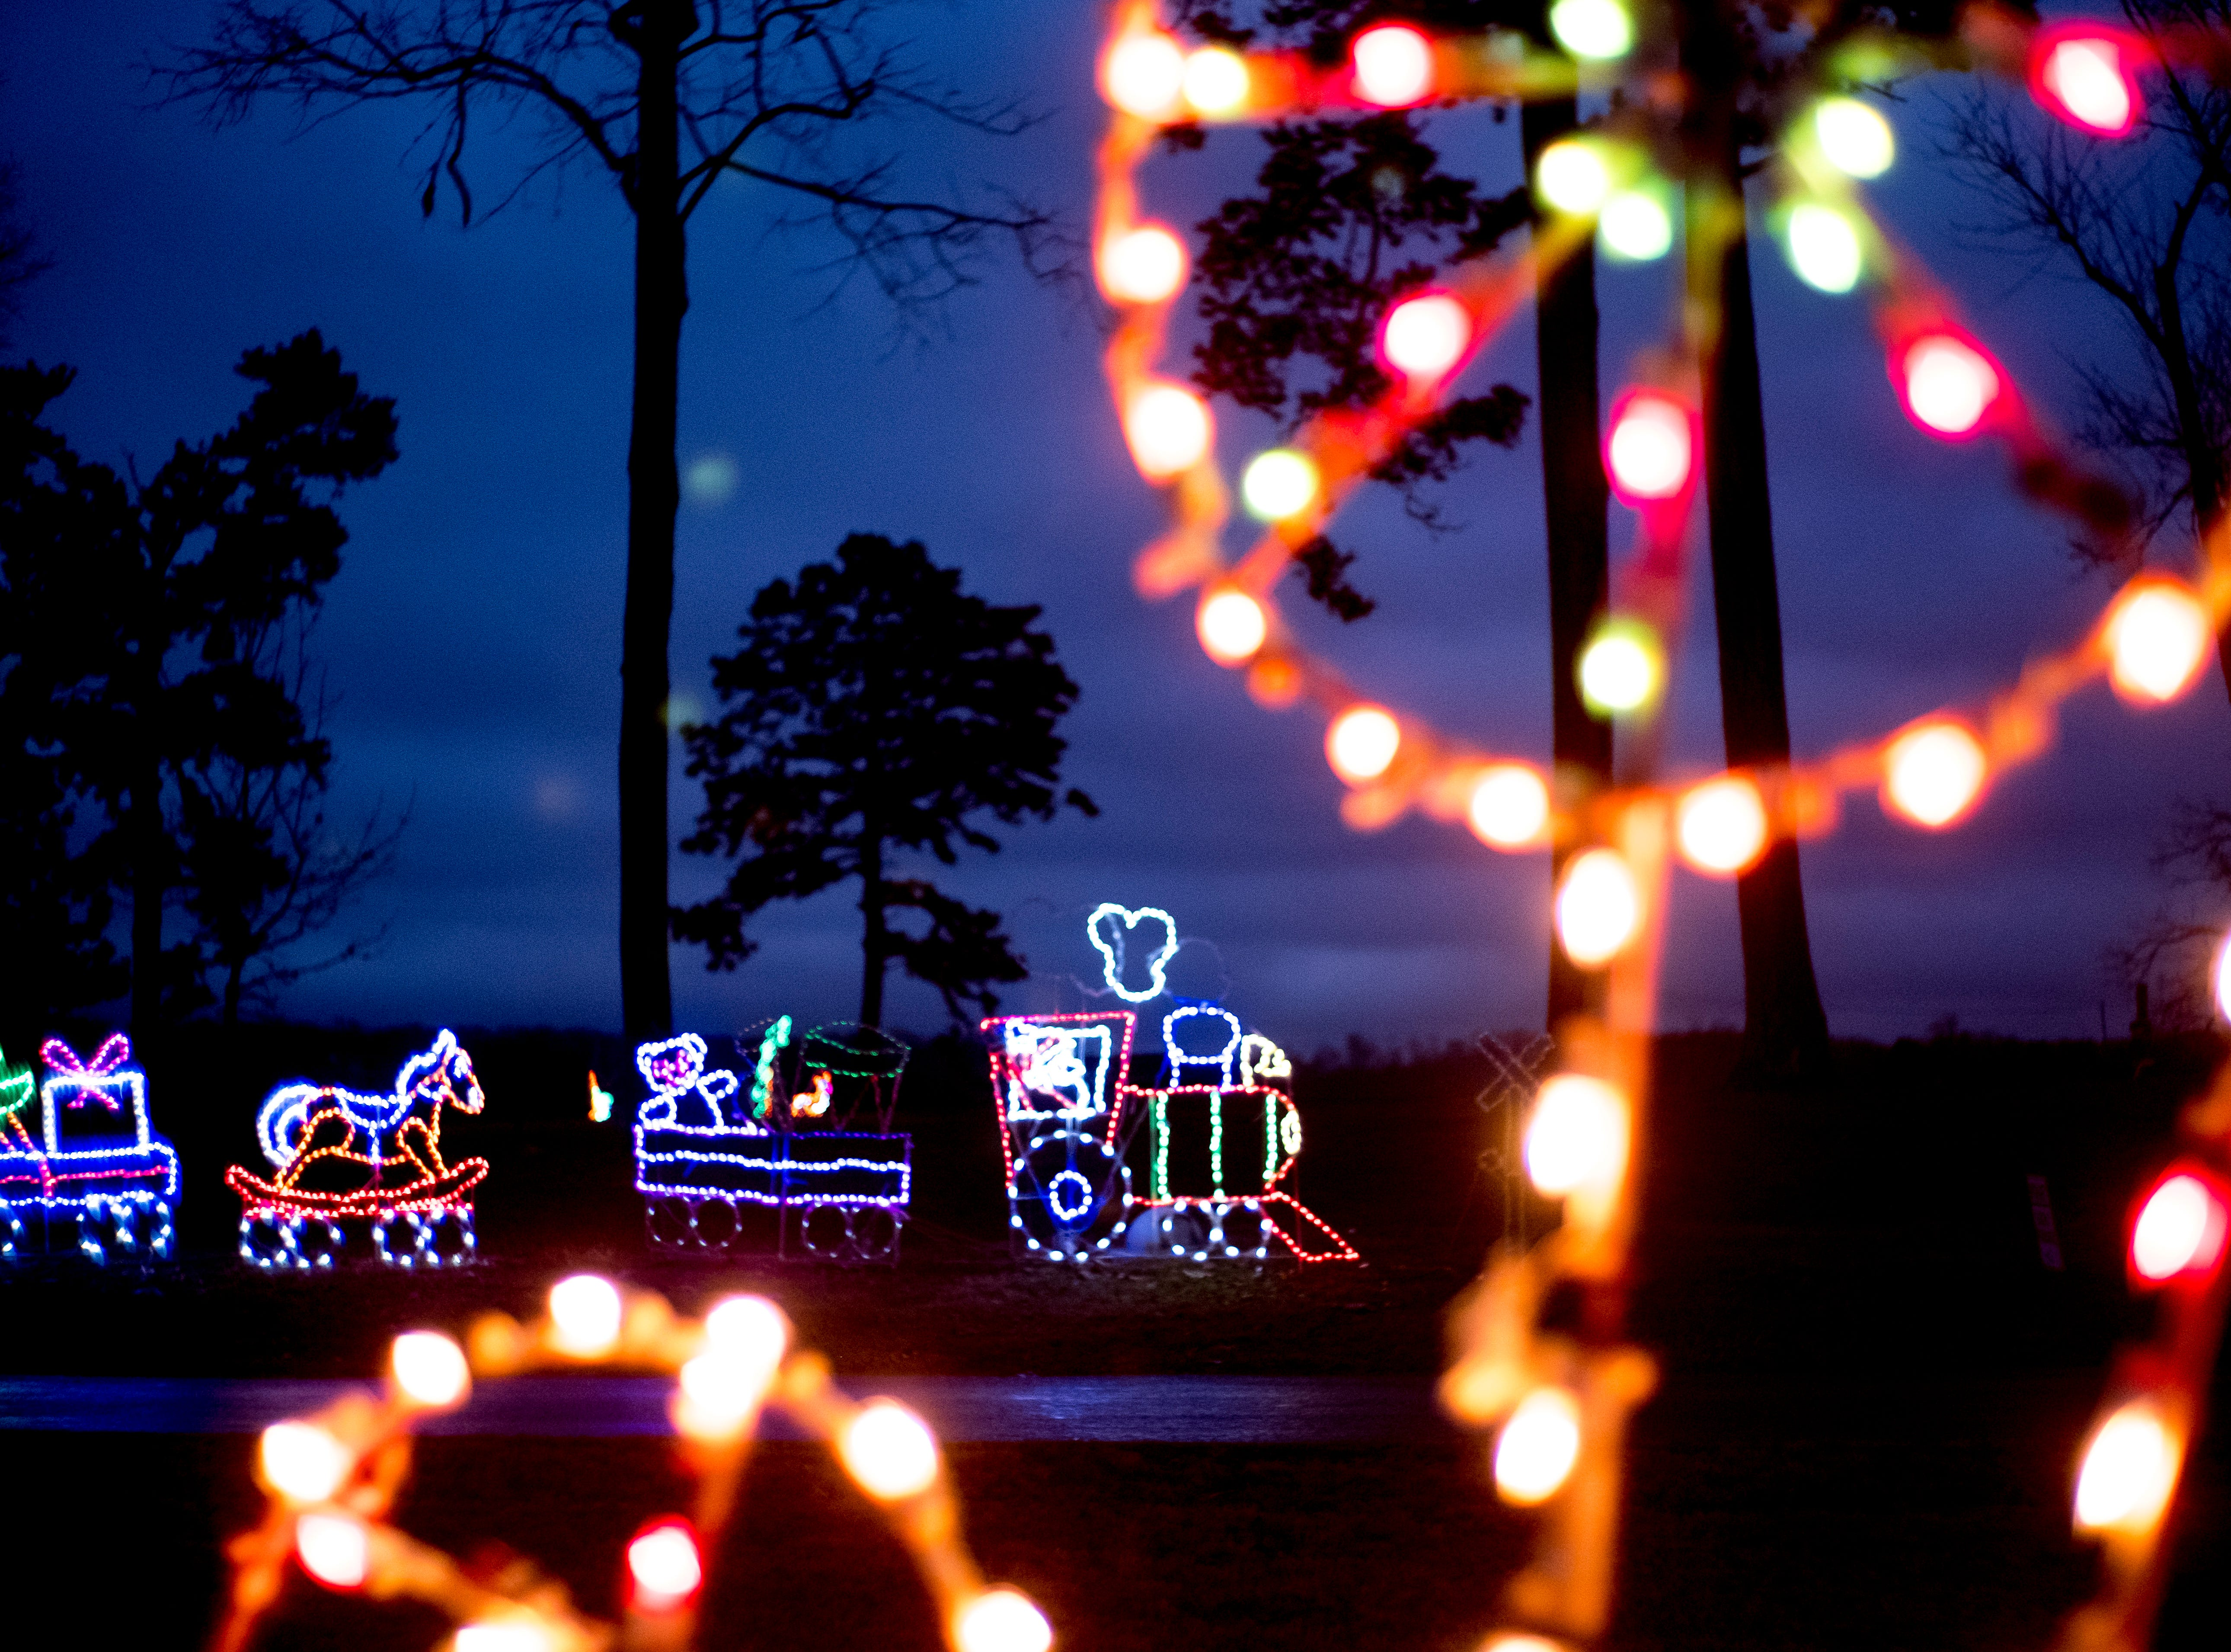 Holiday lights at Knox CountyÕs 20th annual Holiday Festival of Lights kick off at The Cove at Concord Park in Farragut, Tennessee on Friday, December 21, 2018. The family-friendly event is free and will run through Dec. 29 from 6 to 9 p.m., excluding Christmas Eve and Christmas Day.